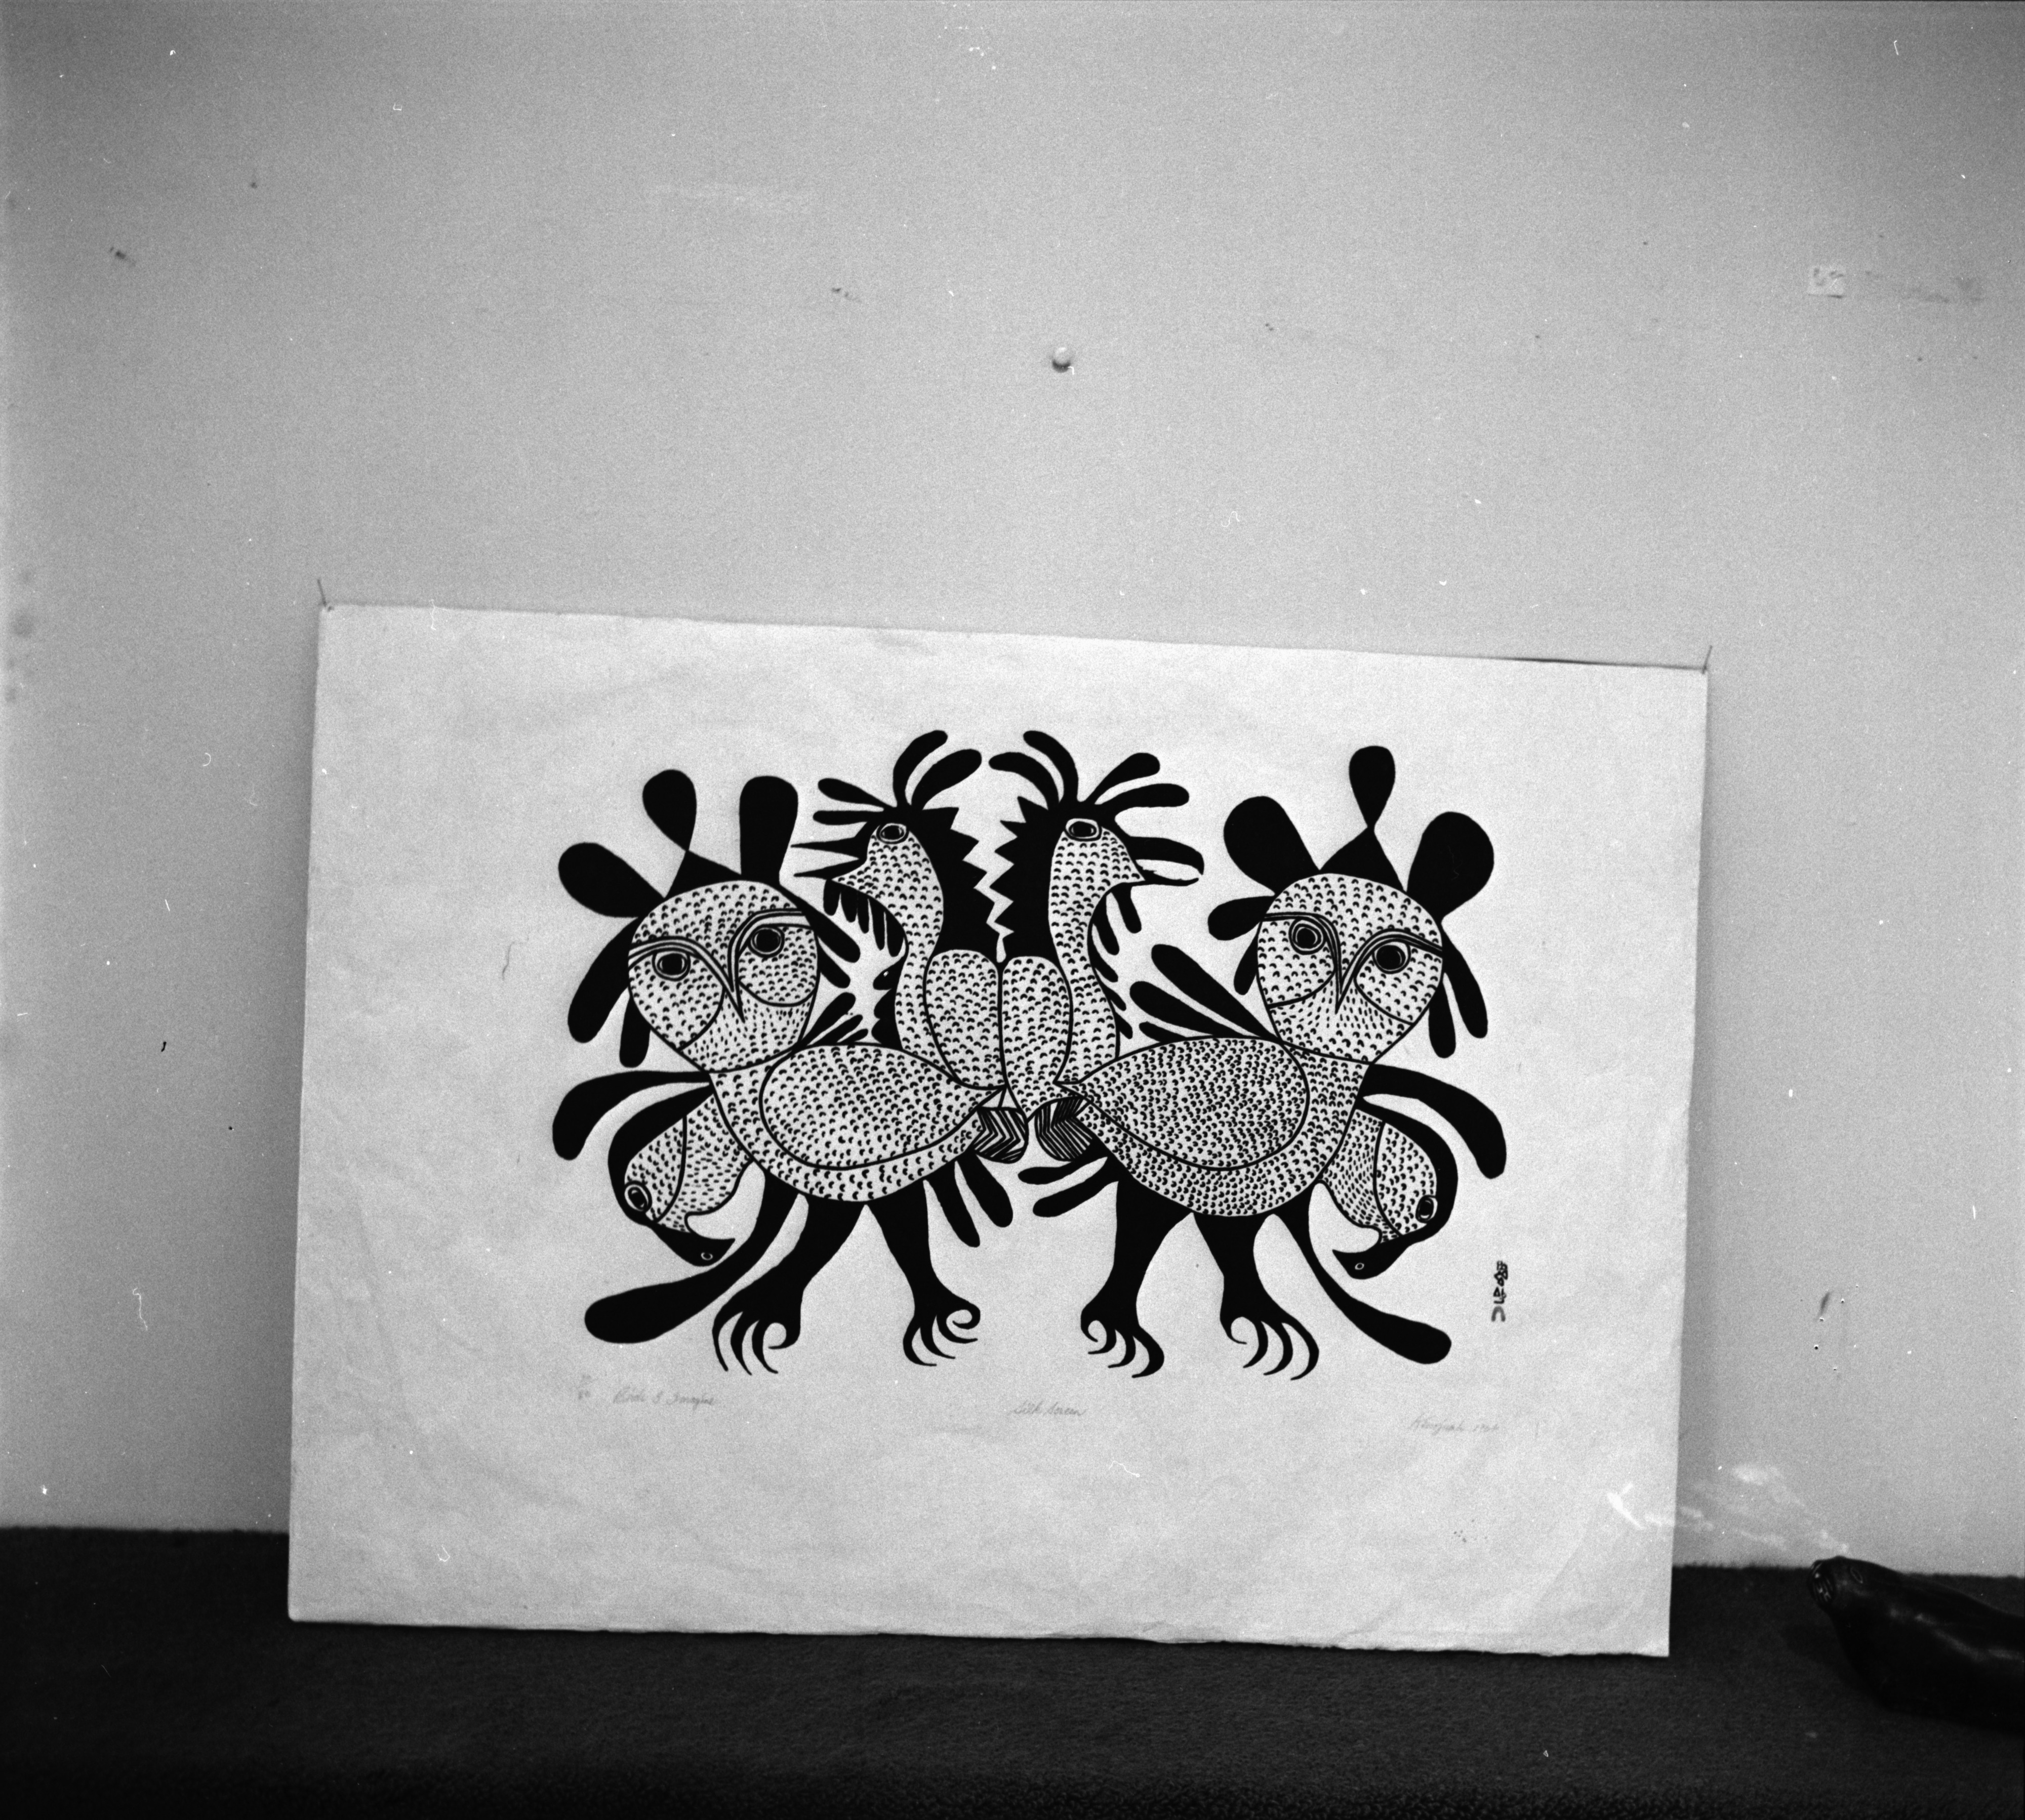 Photograph of Kenojuak Ashevak Print, 'Birds I Imagine', March 1967 image